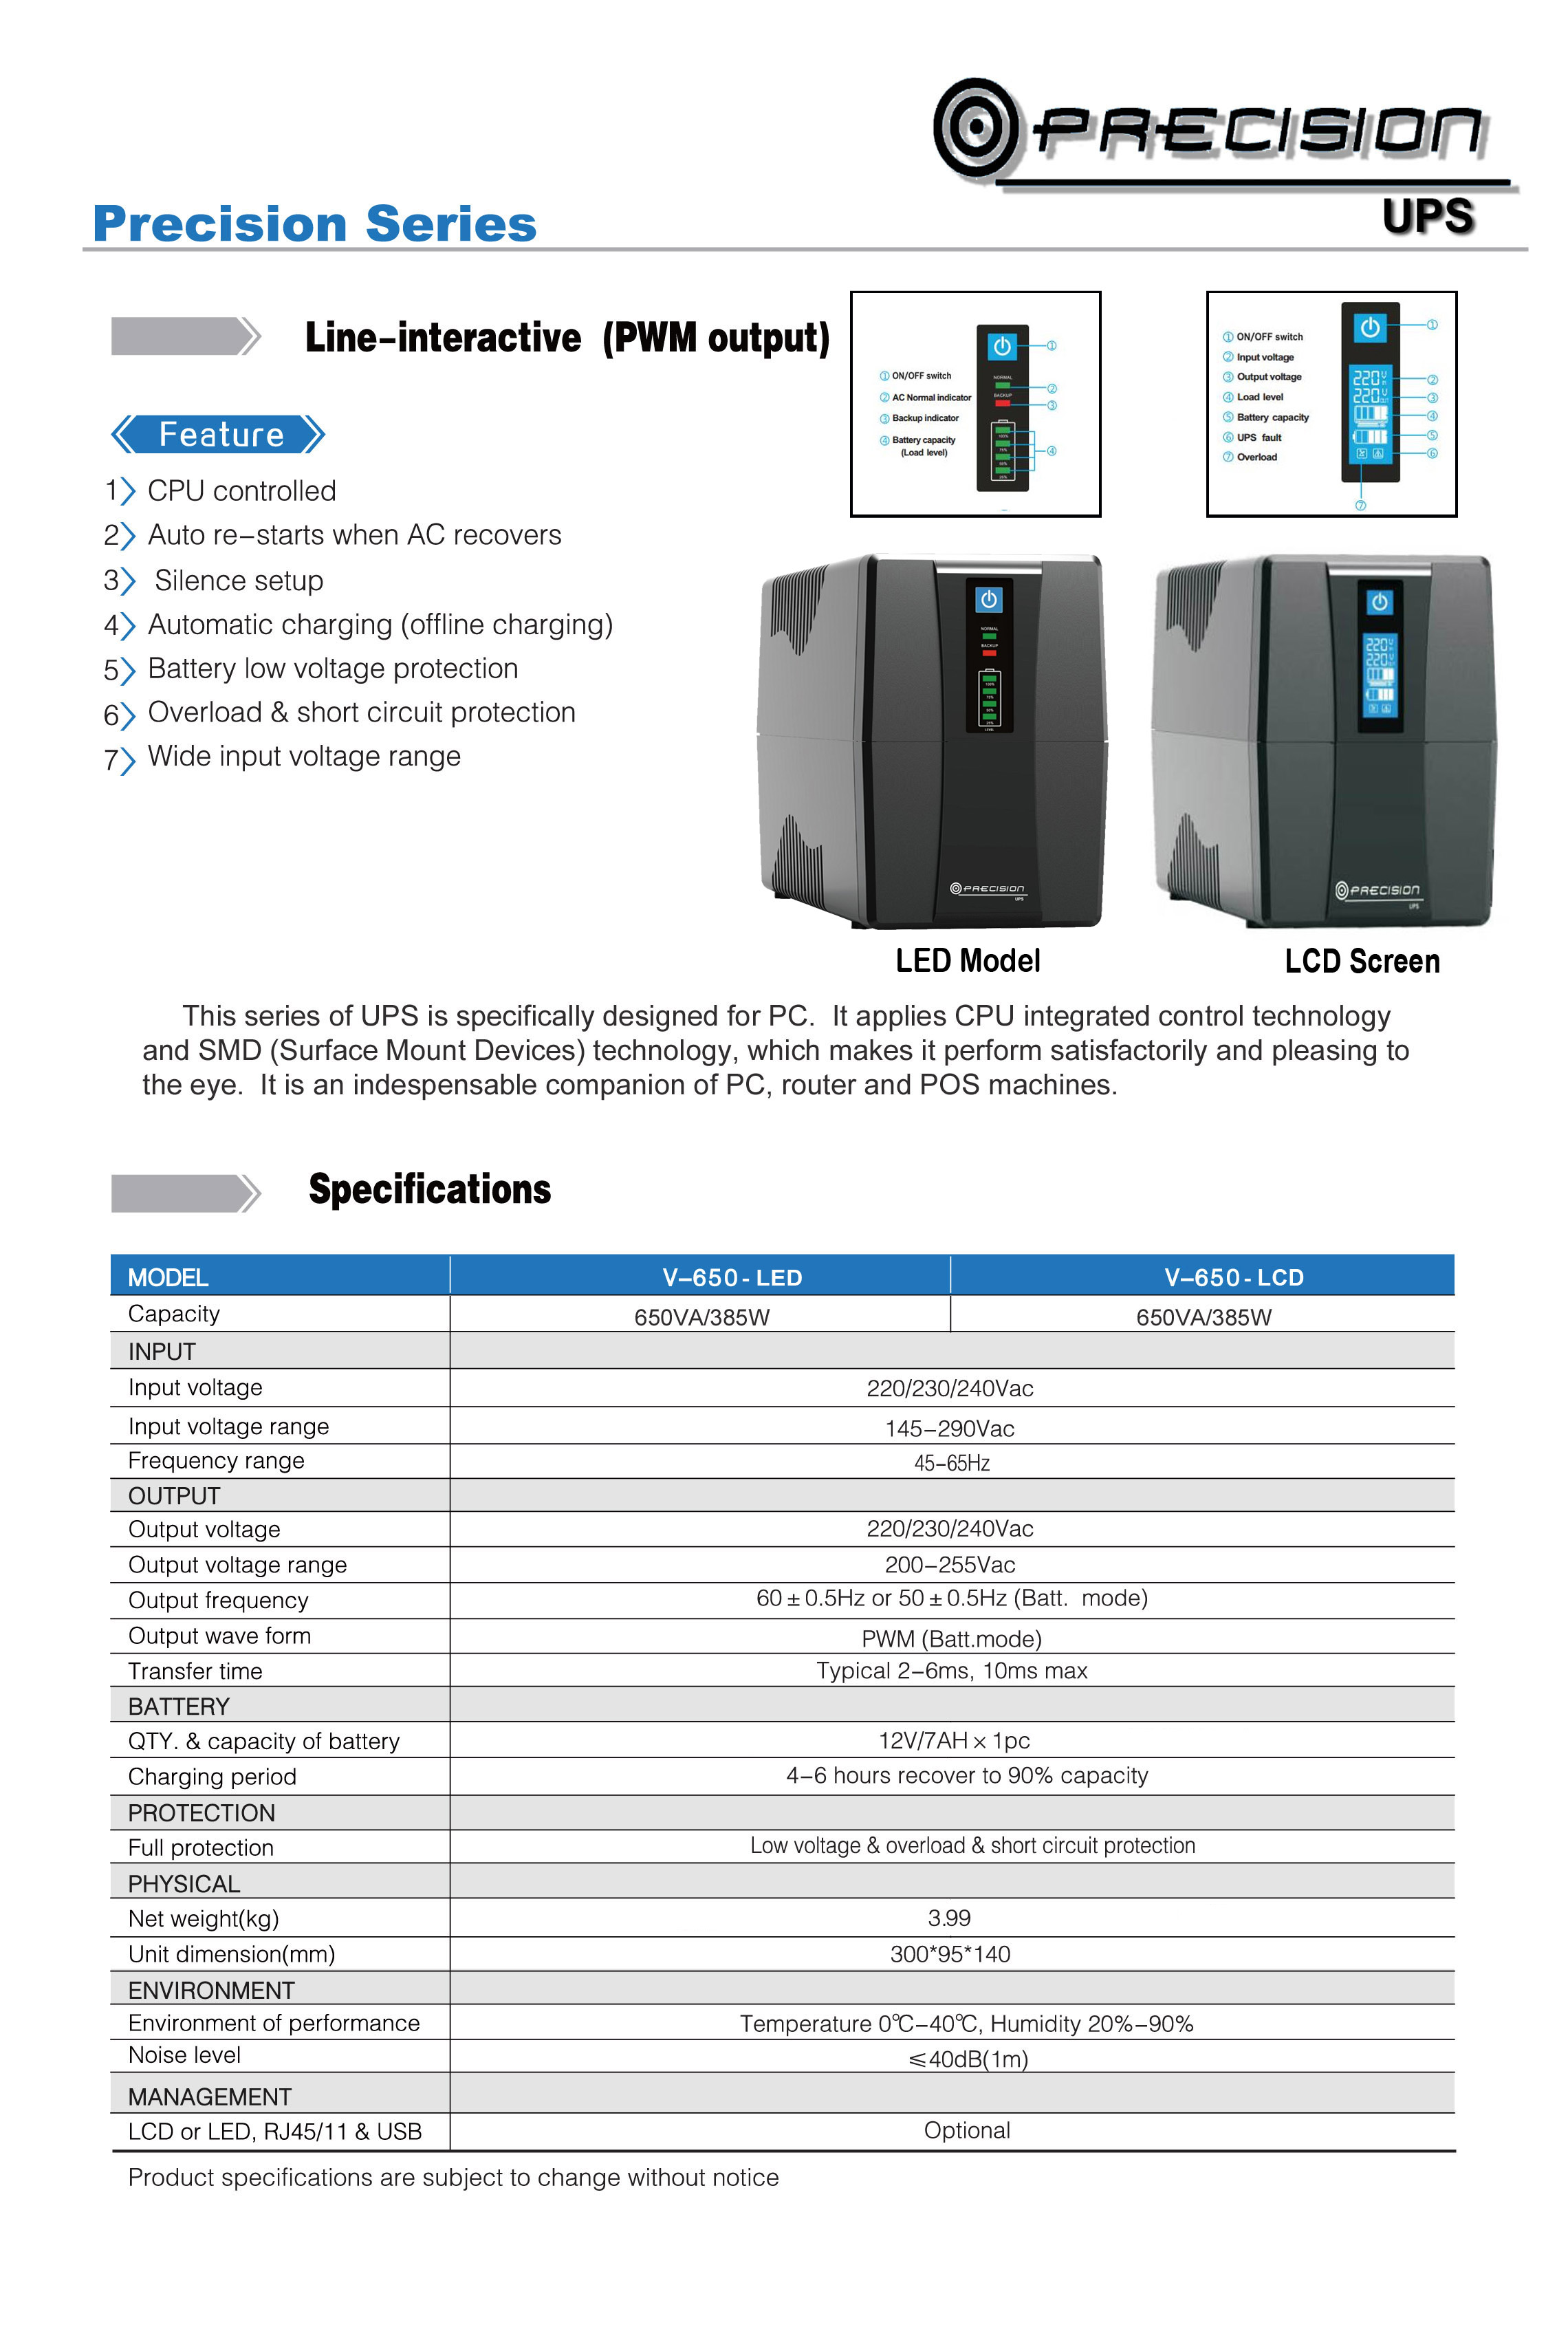 Precision 650va Ups And Battery Low Voltage Protection Short Circuit Protectionin Car Brochure Original Pdf